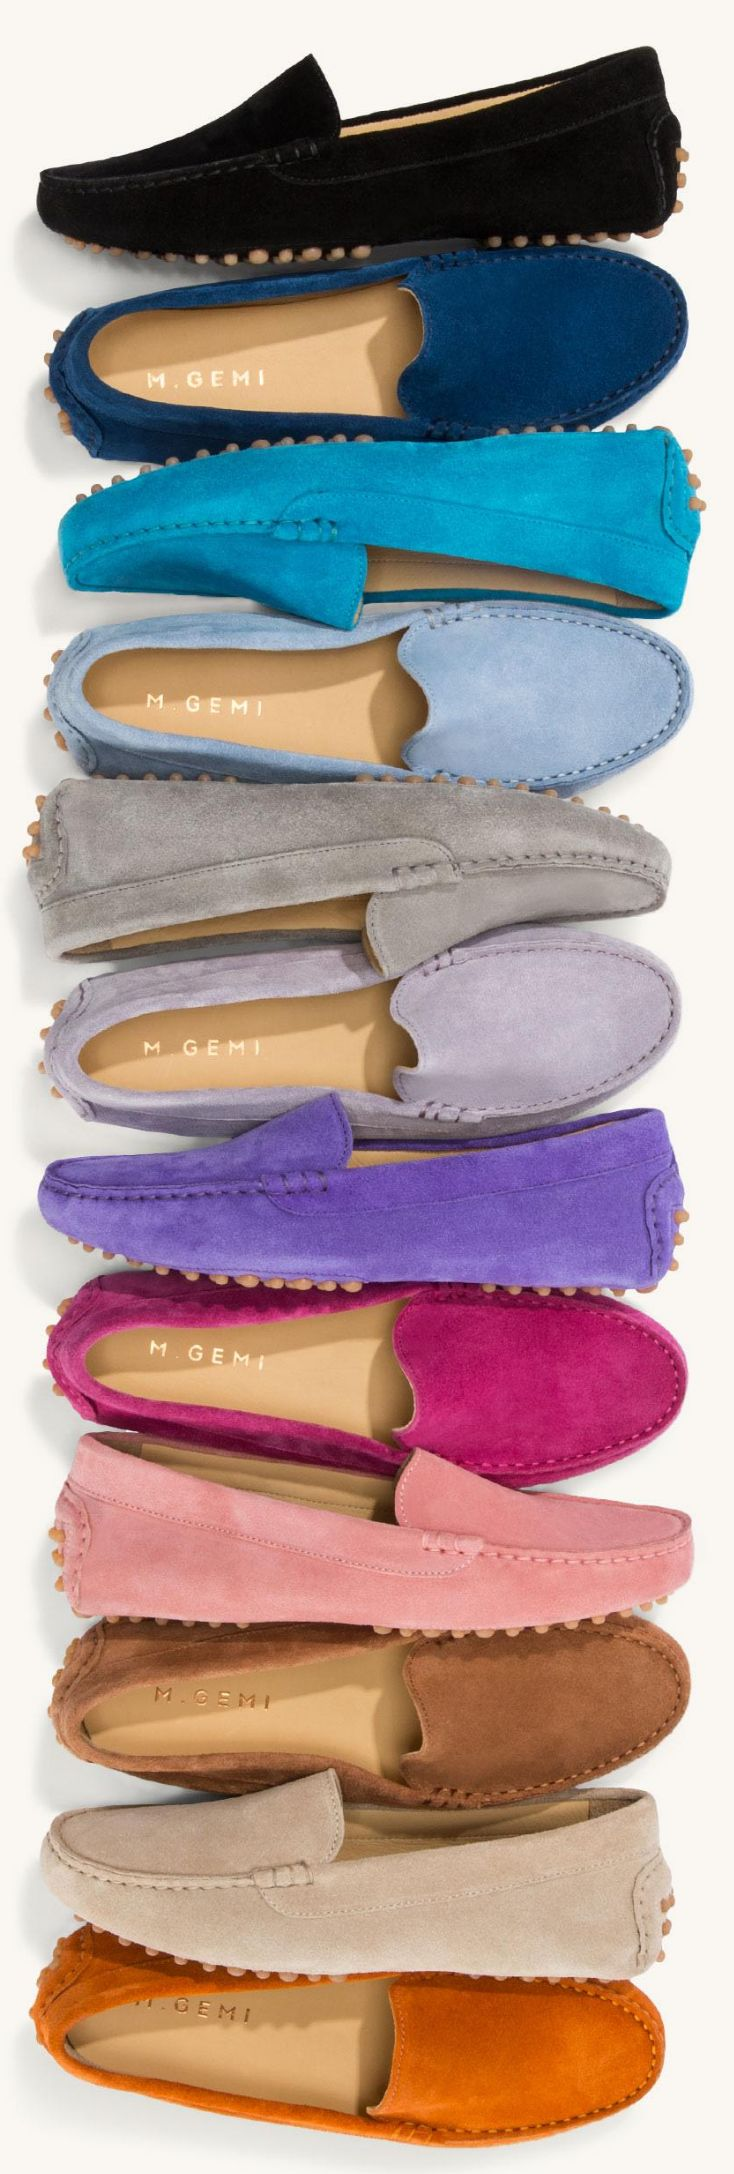 Loving these driving mocs from M. Gemi